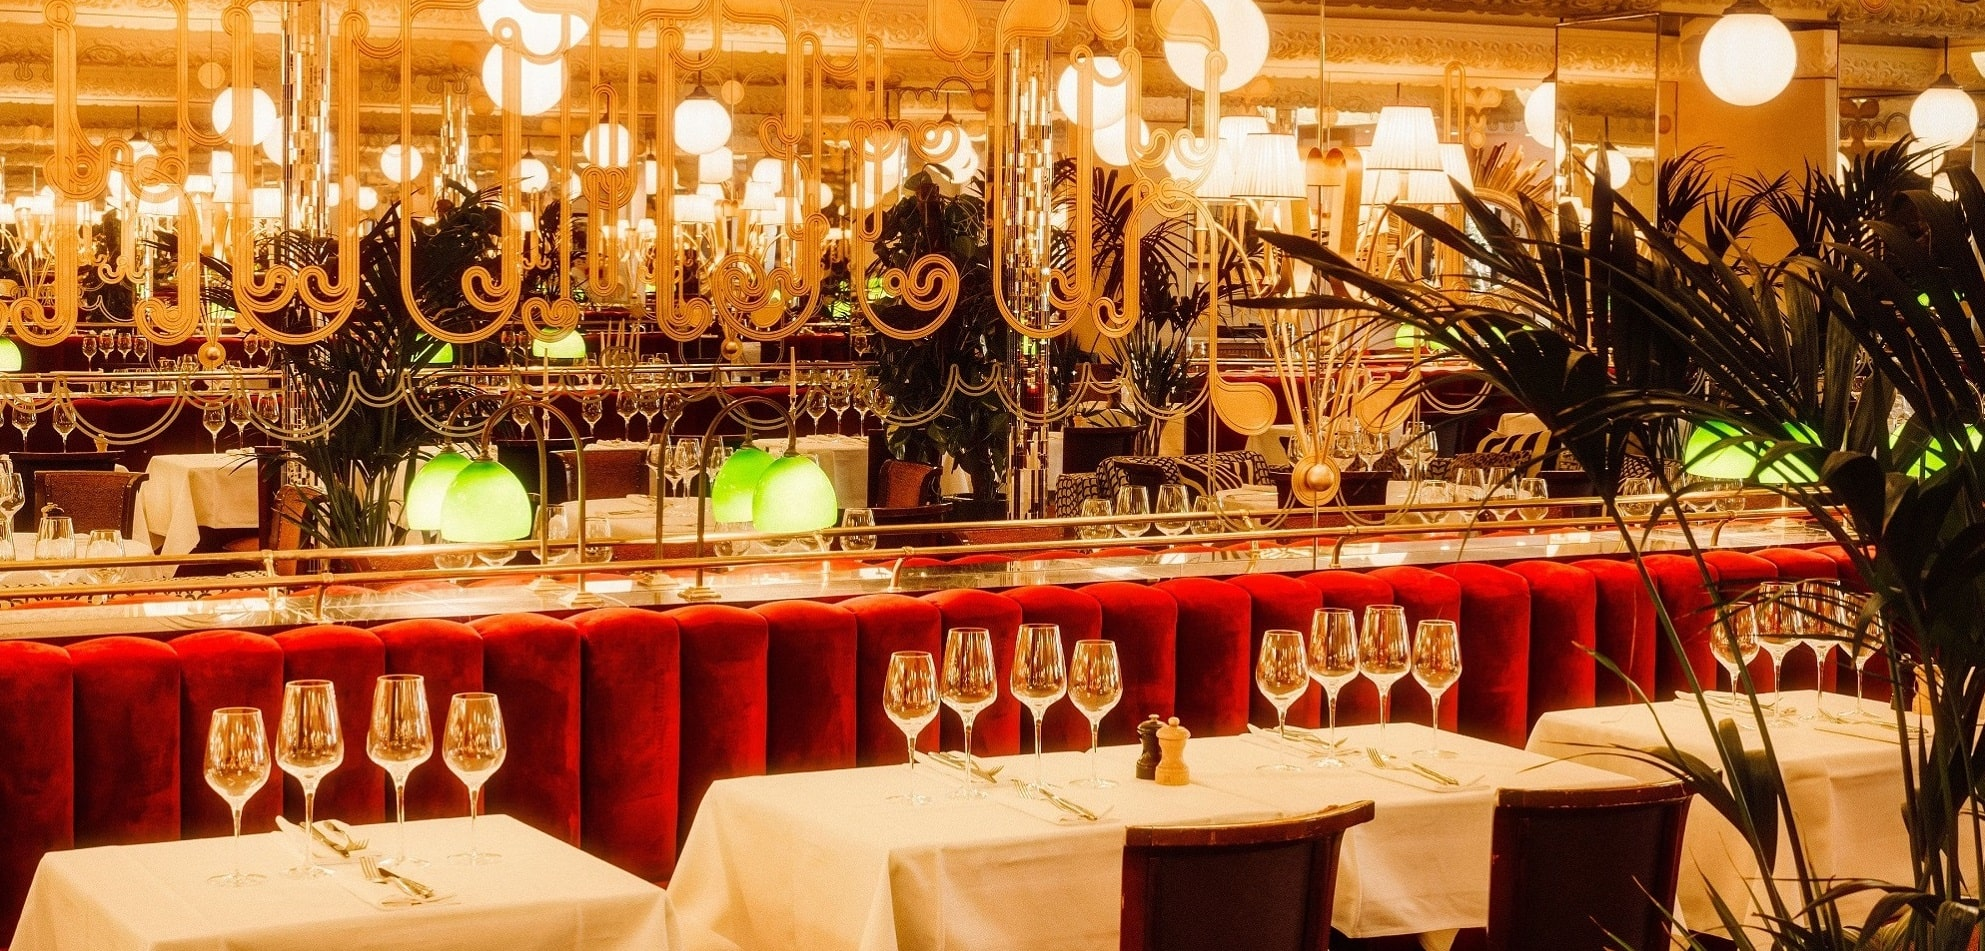 Brunch Brasserie Thoumieux (75007 Paris 7ème)